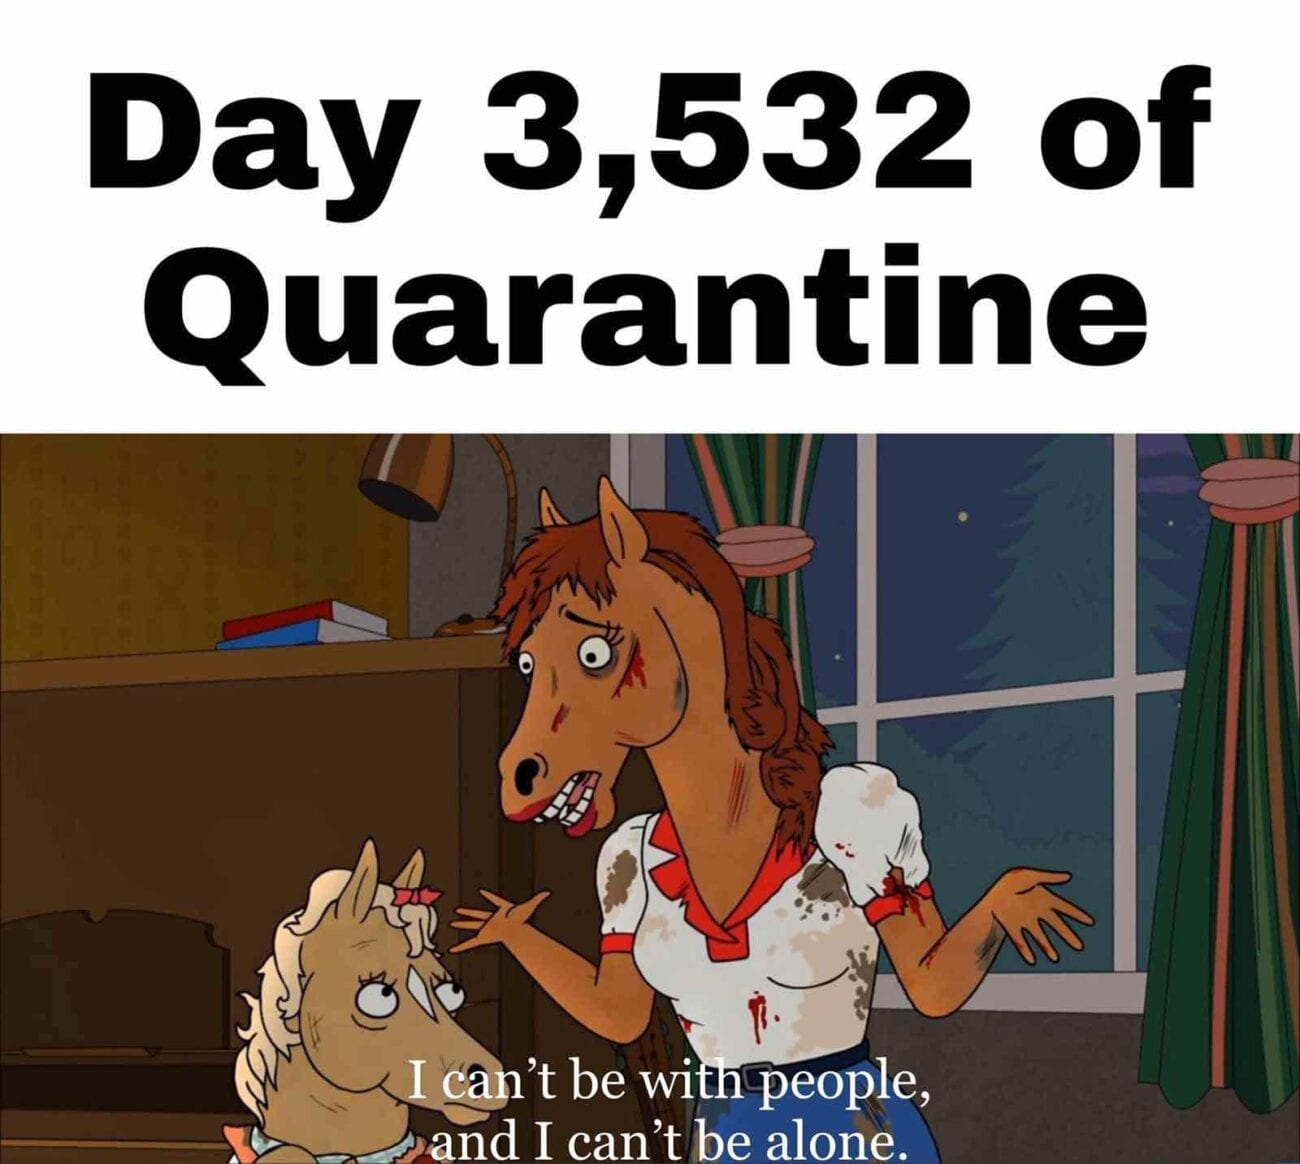 Whether or not you agree, the US is starting to roll back on its quarantine protocols. Here are some hilarious quarantine memes that helped us through.